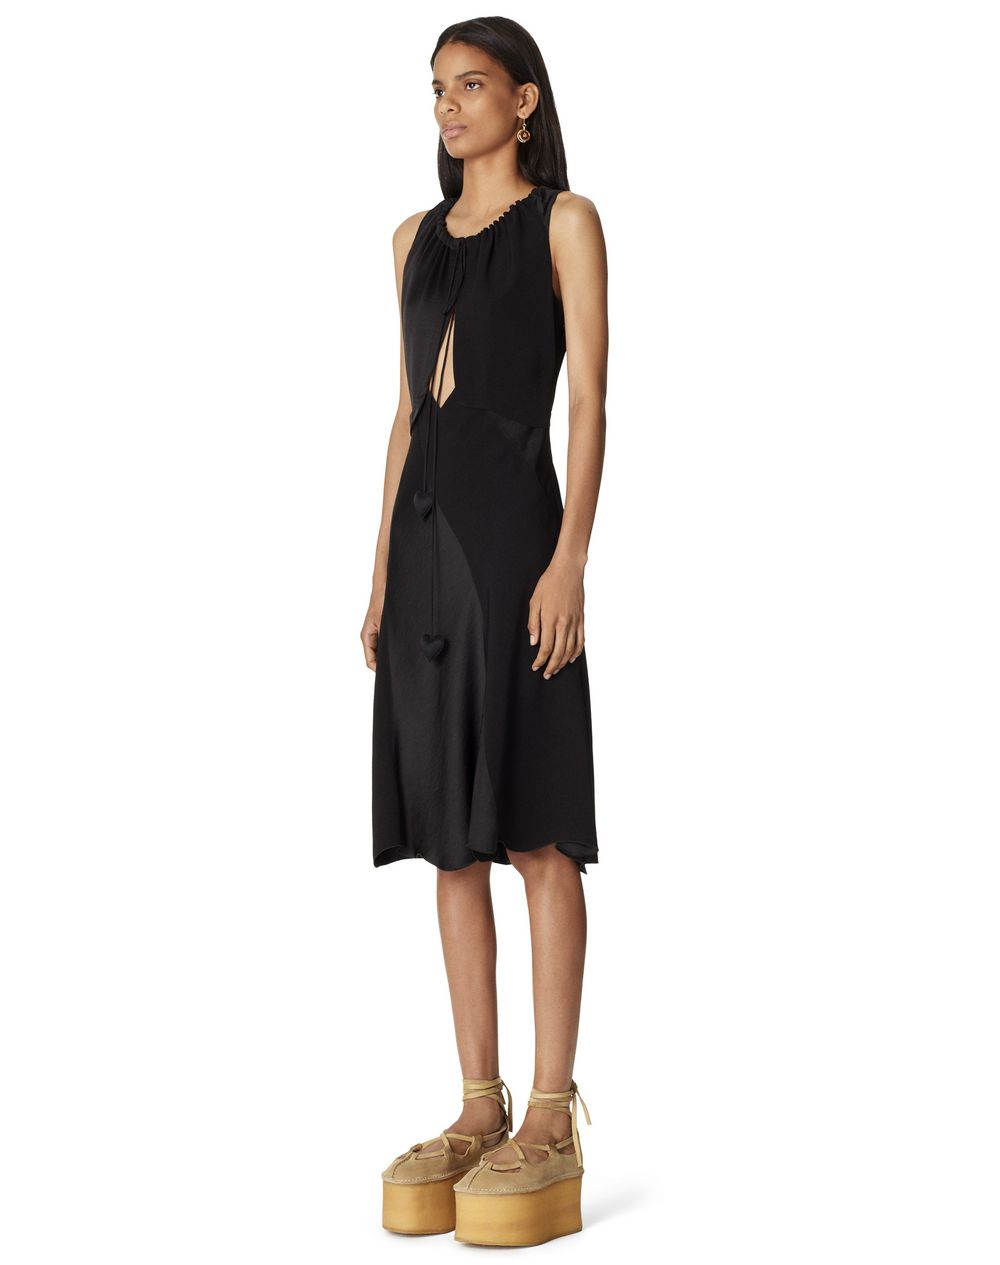 DUAL-MATERIAL DRESS  - Lanvin